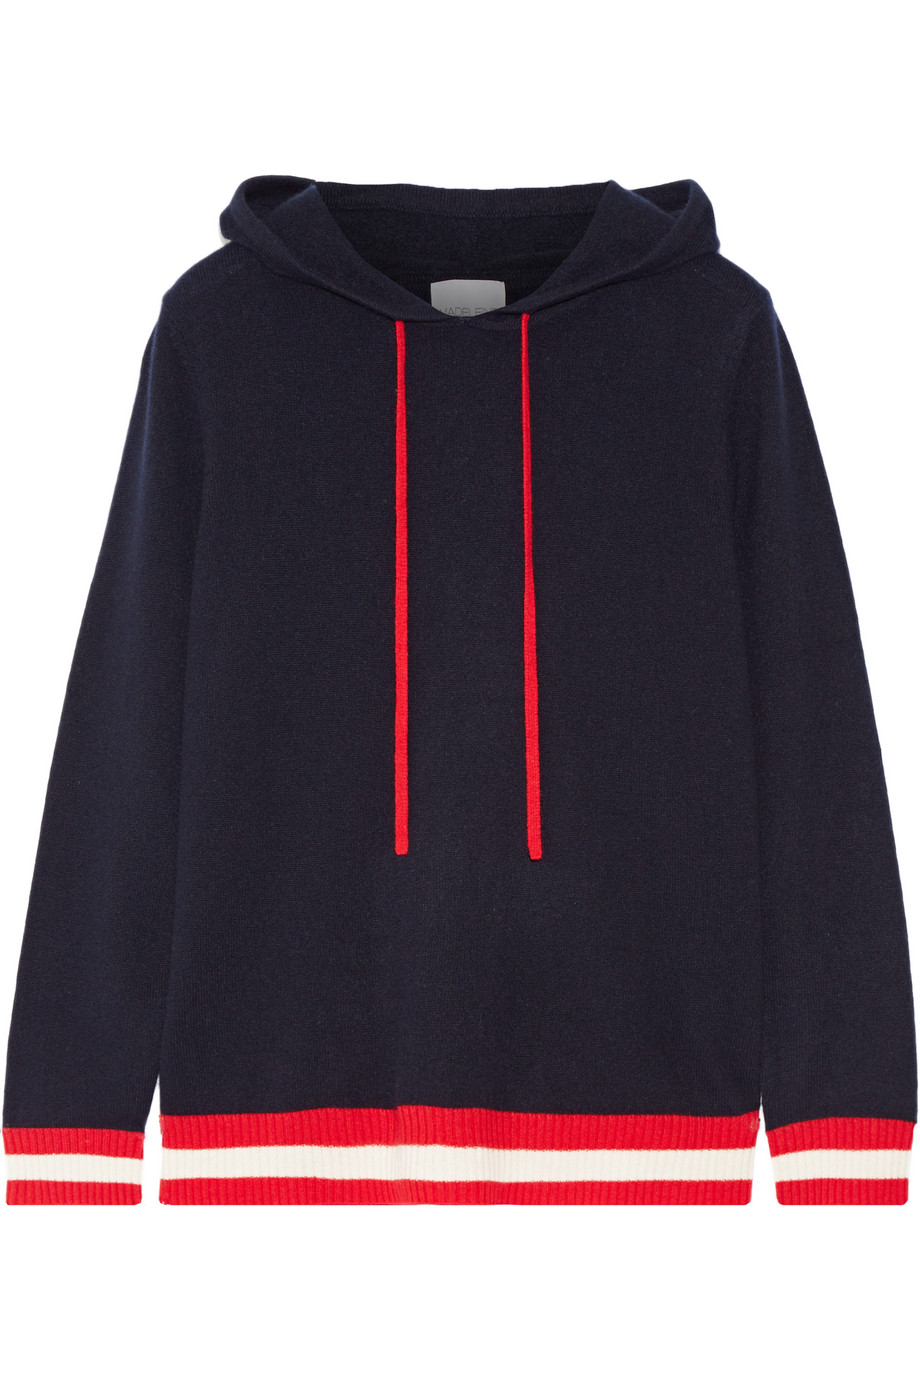 Dalton Hooded Striped Cashmere Sweater, Madeleine Thompson, Size: L